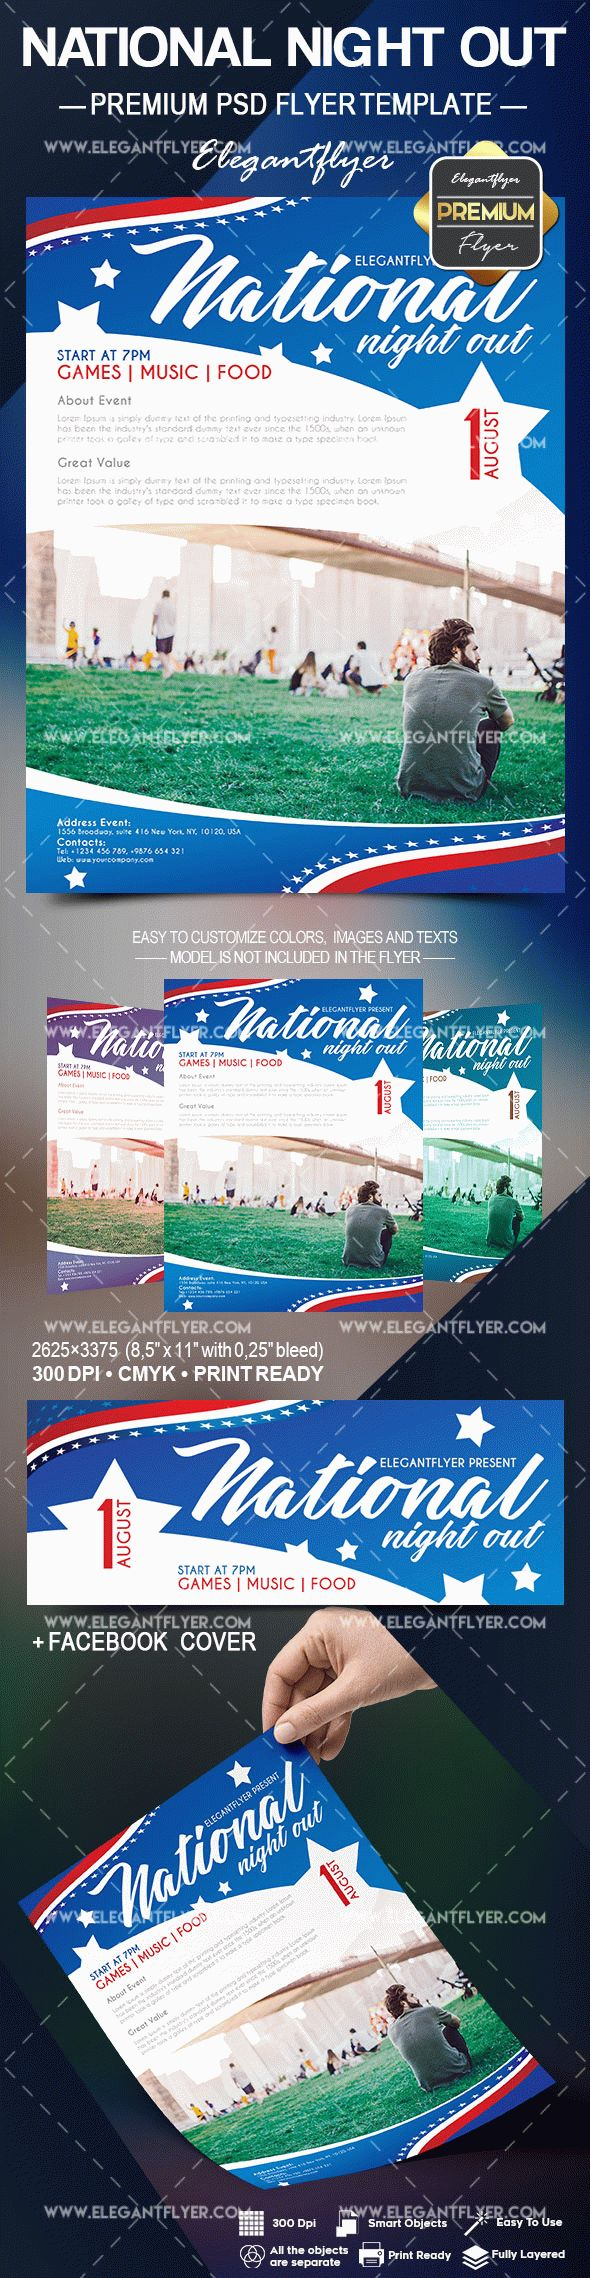 National Night Out Flyer Psd Template By Elegantflyer